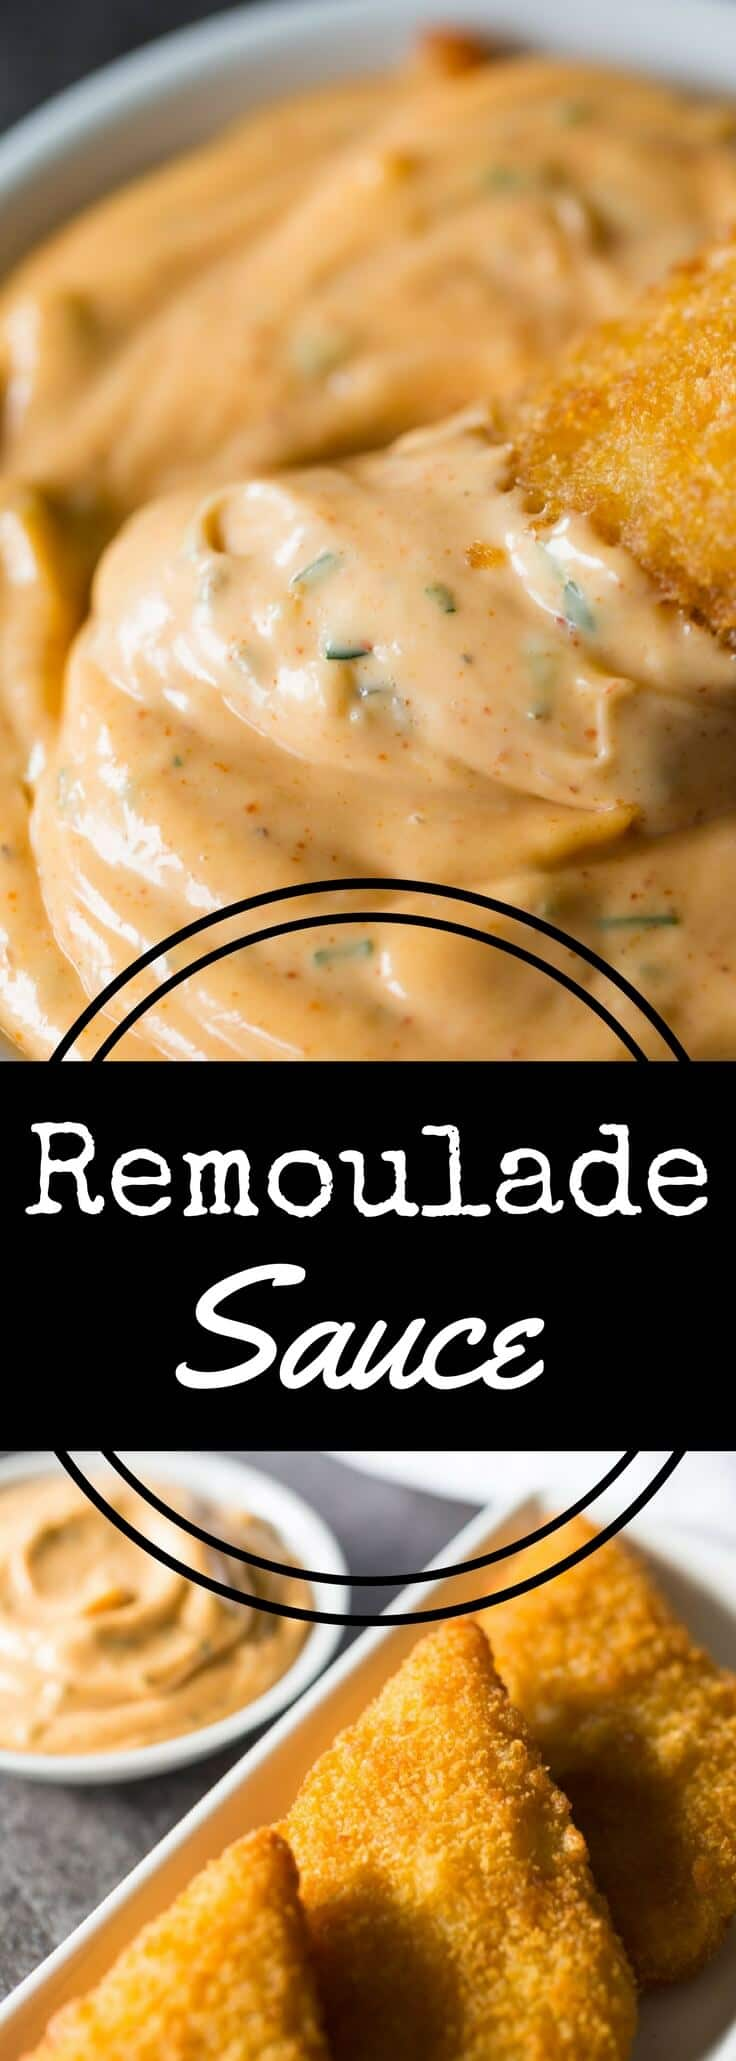 There\'s nothing like a good New Orleans remoulade sauce. This simple, easy remoulade recipe is perfect for serving with shrimp, crab cakes, and fish.